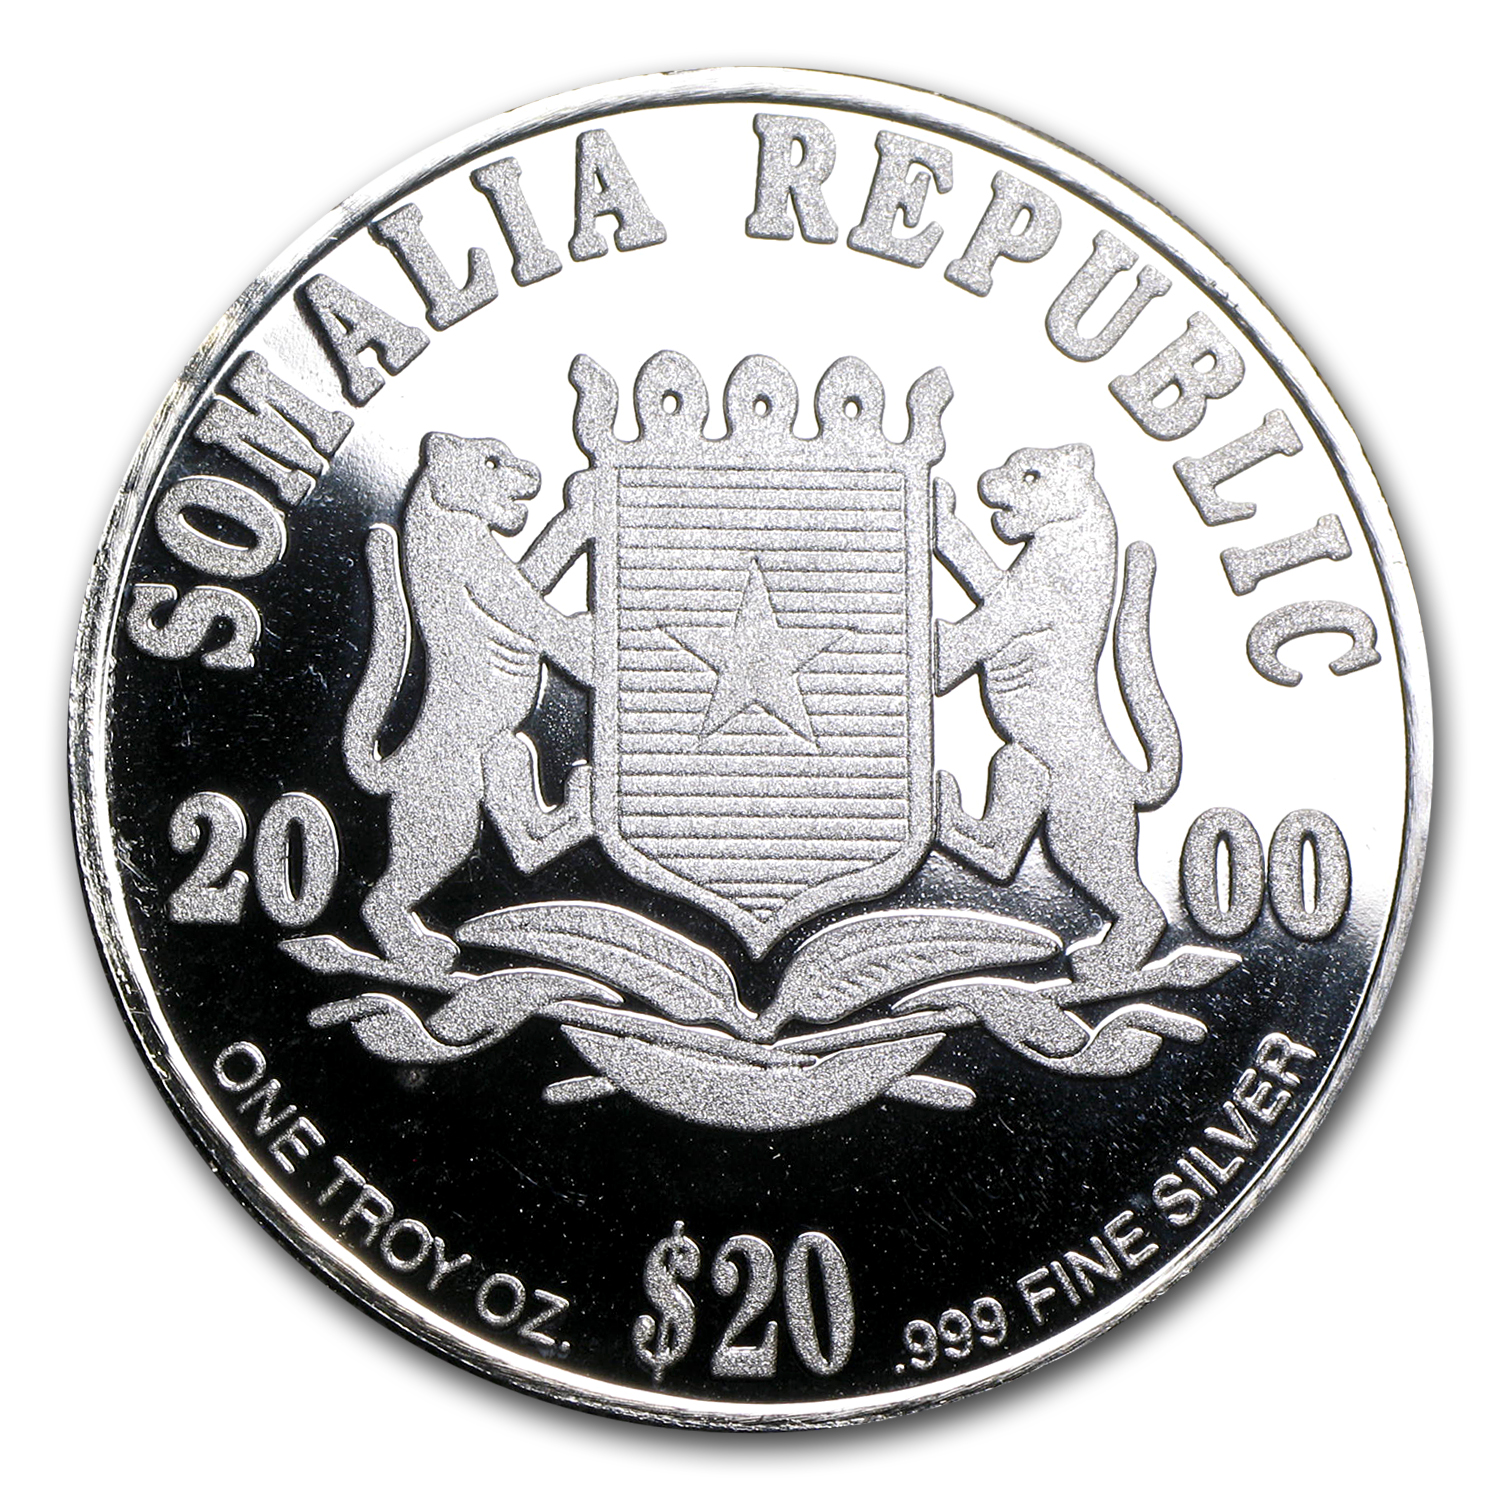 2000 Somali Republic Silver $20 World Peace